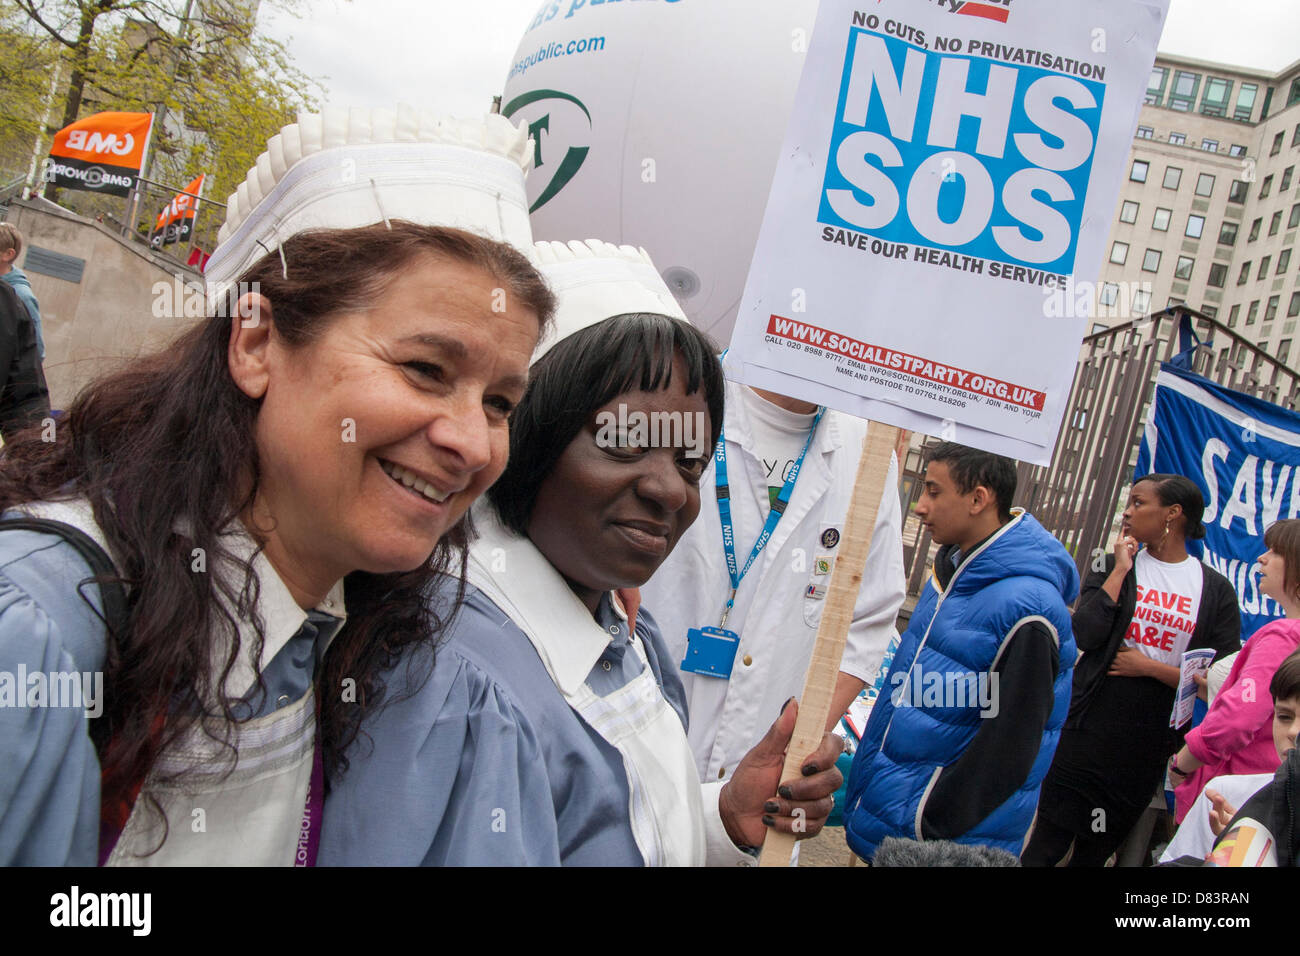 London, UK. 18th May 2013. London. Protesters prepare to march against government cuts to services at some London - Stock Image